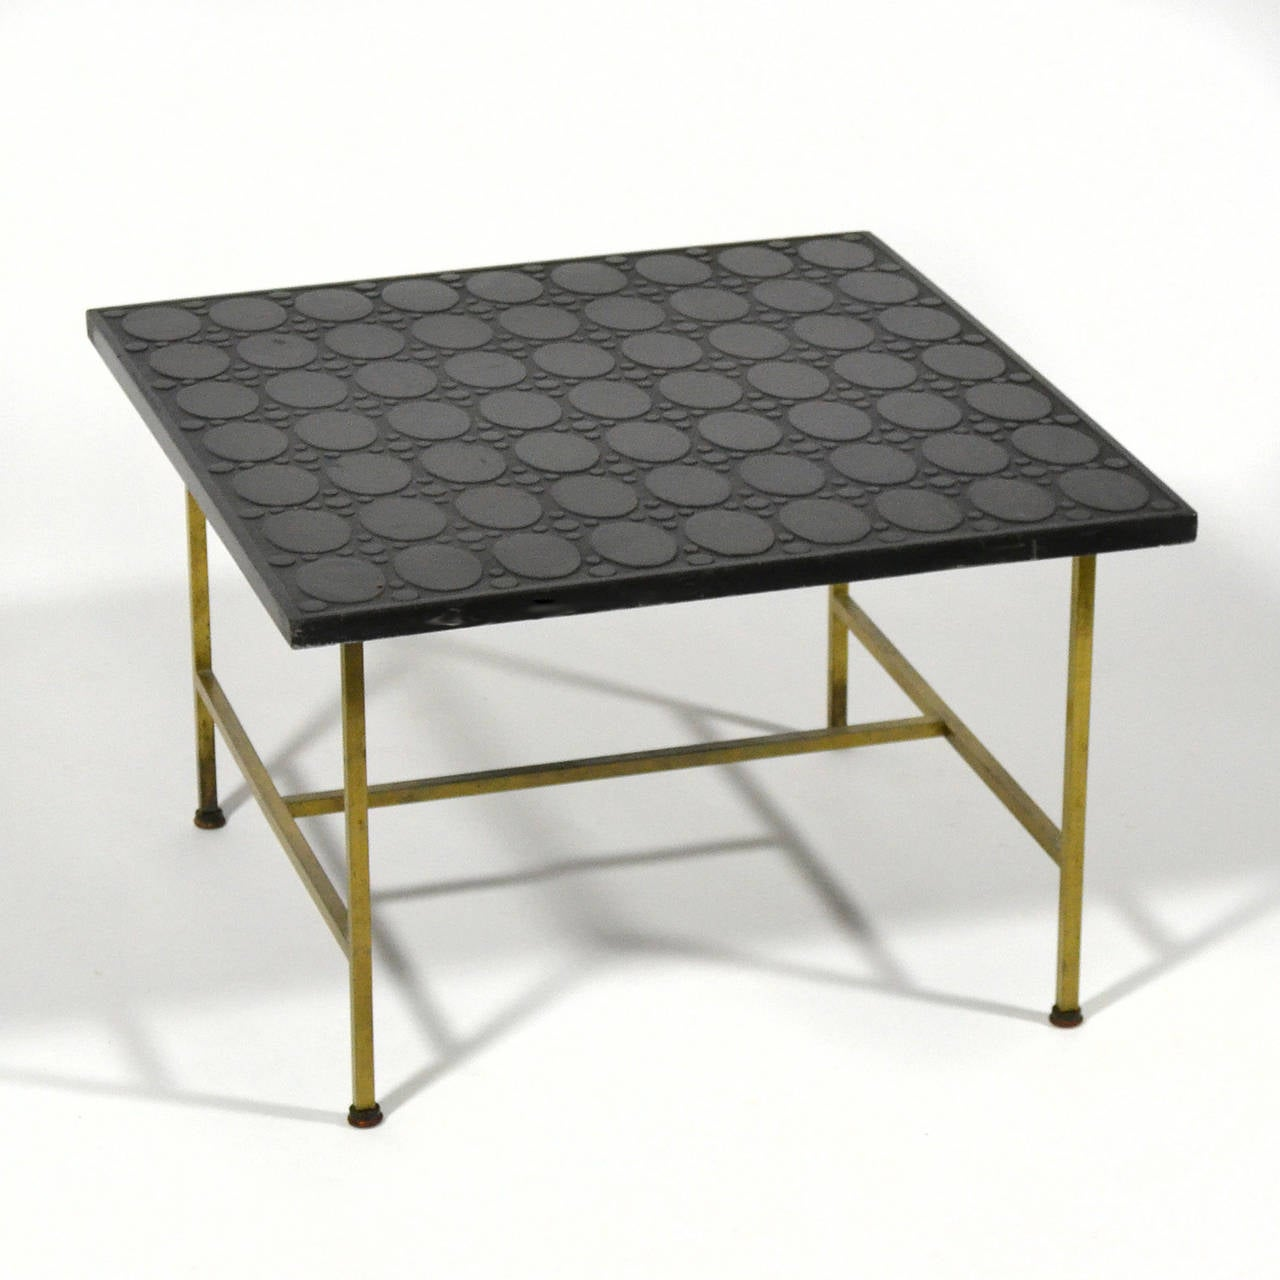 Paul McCobb Brass Side or End Table with Uncommon Textured Top For Sale 1